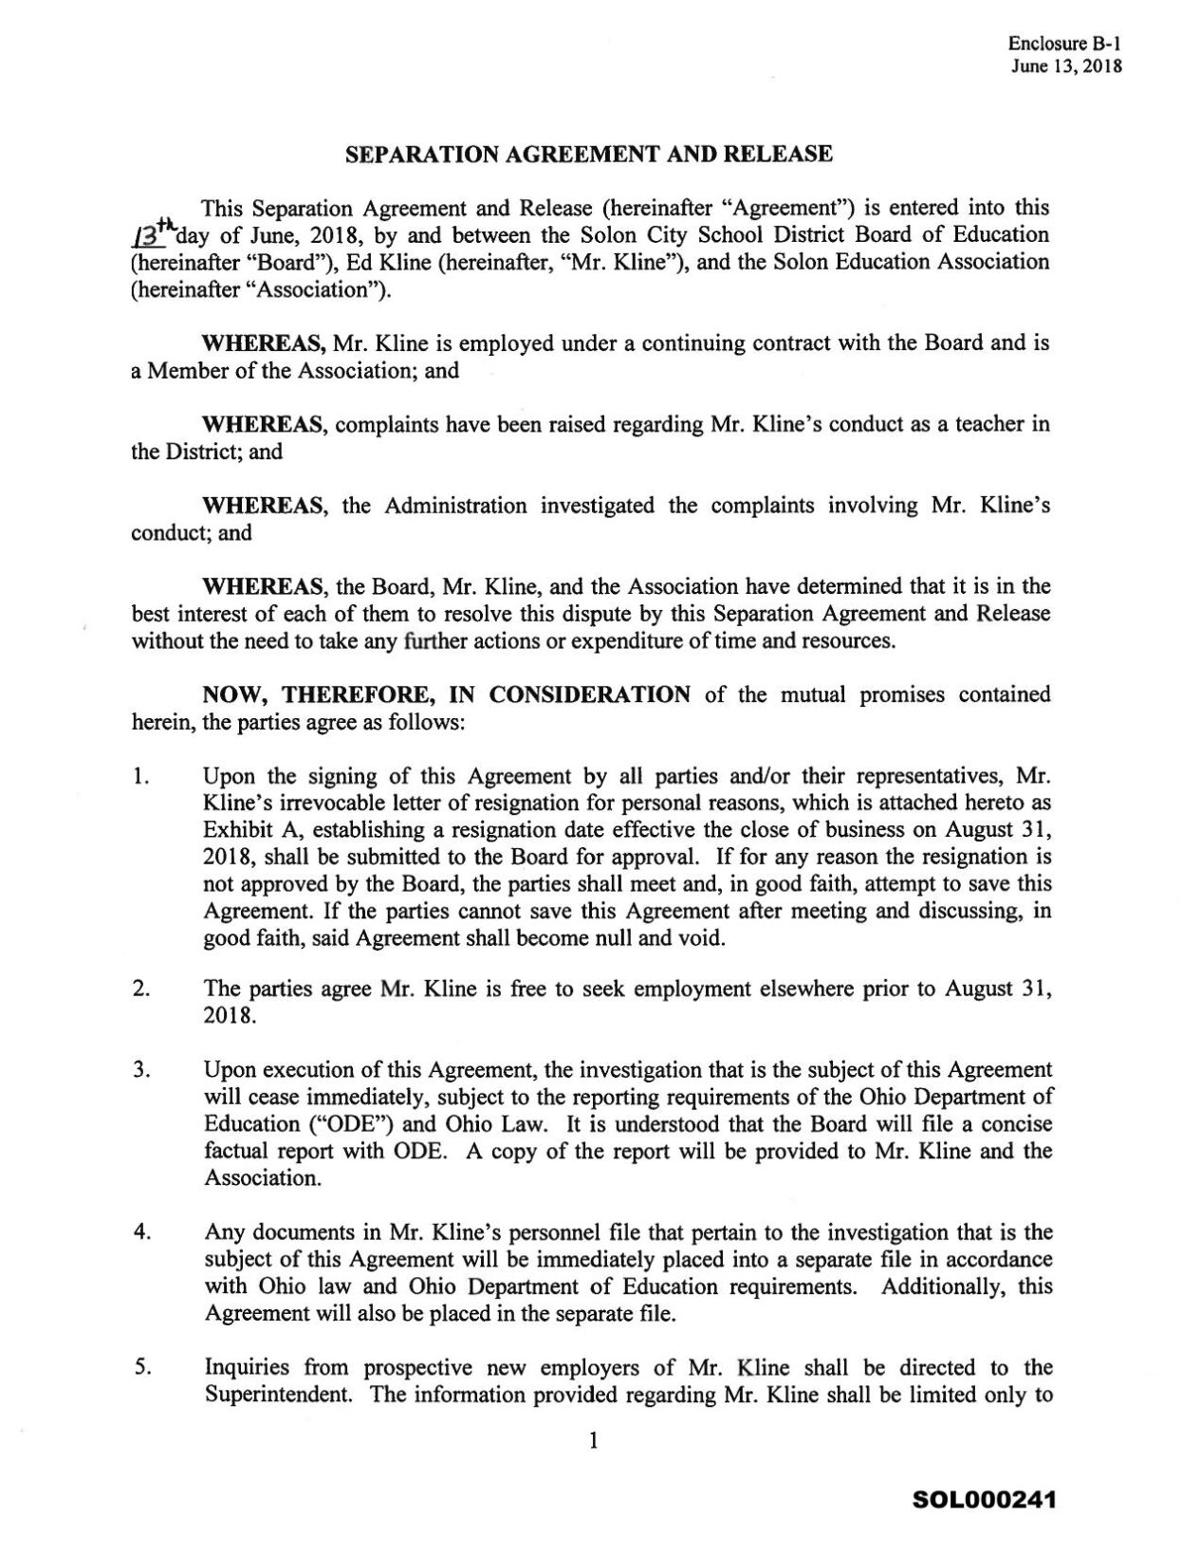 The separation agreement.pdf